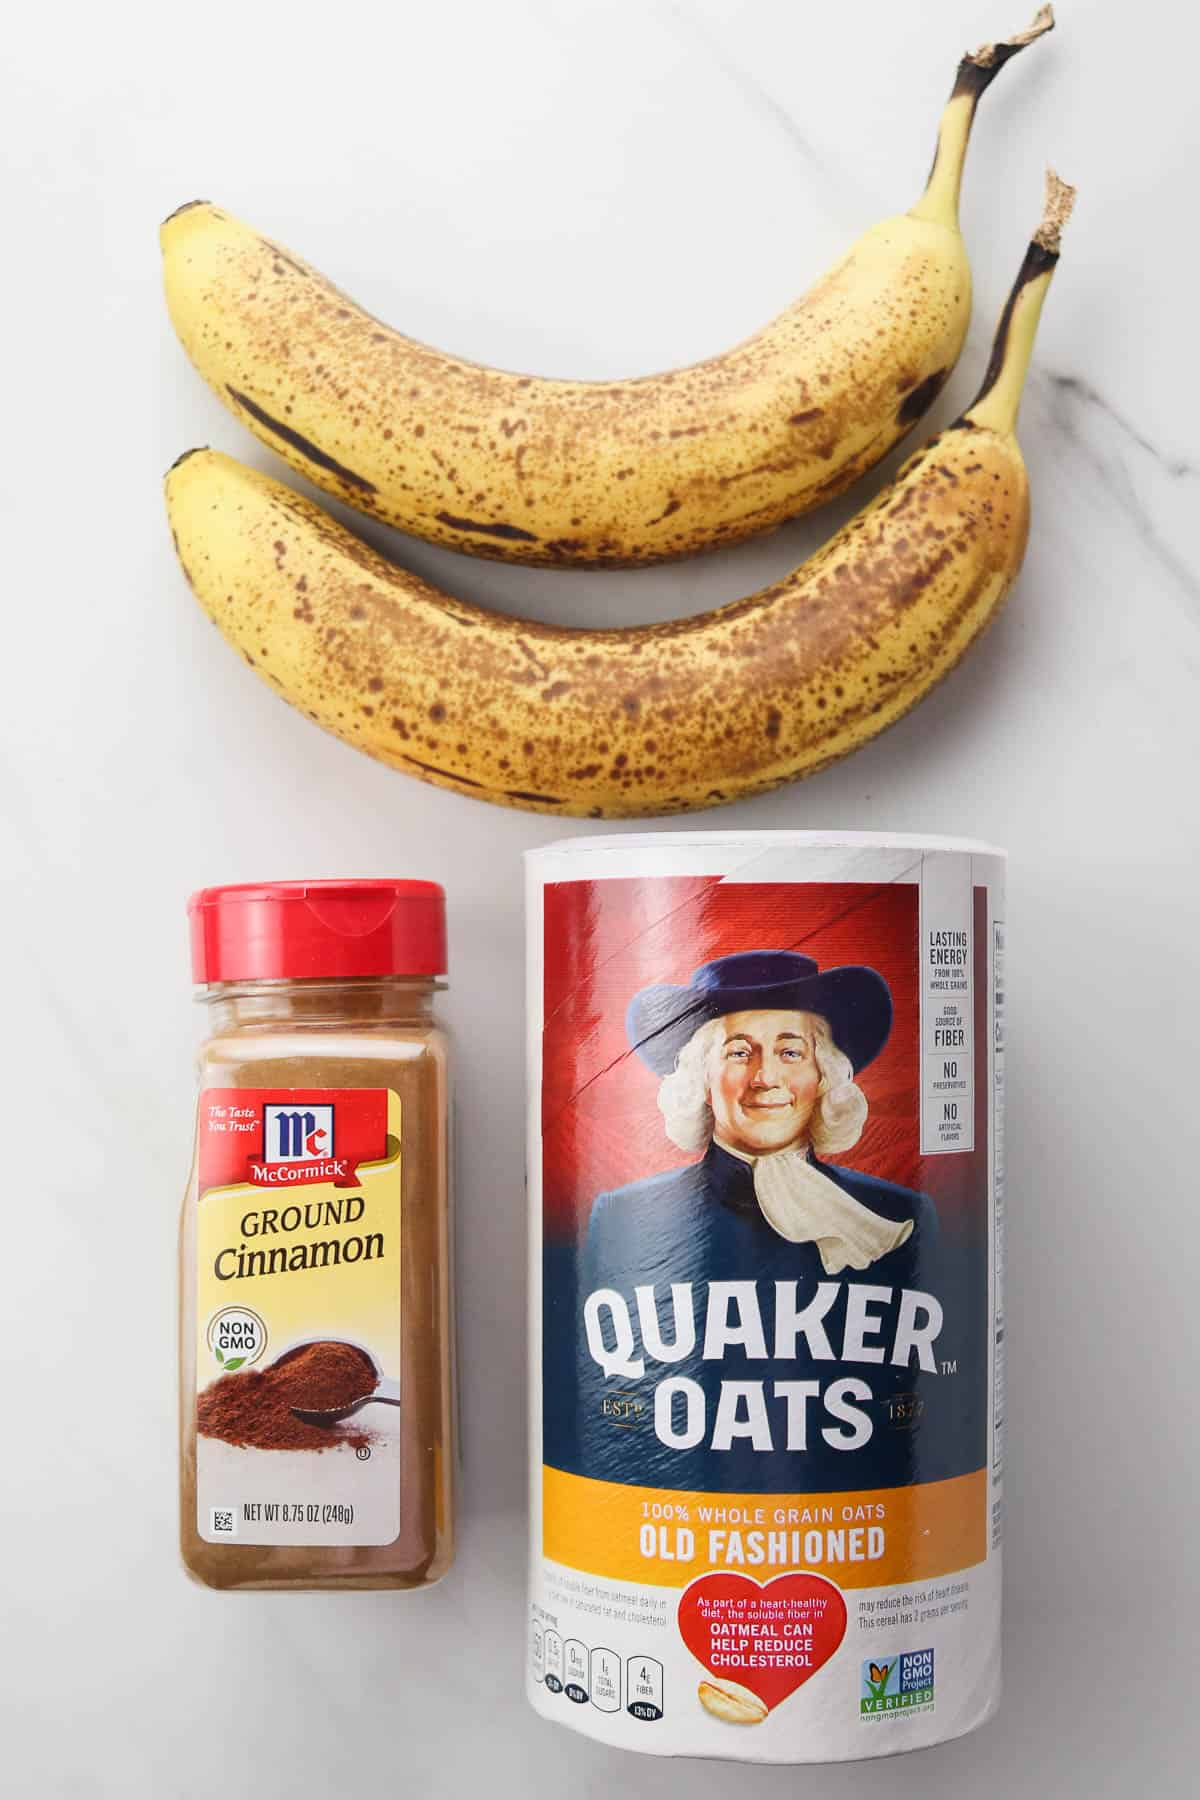 ripe bananas, cinnamon, and old fashioned oats